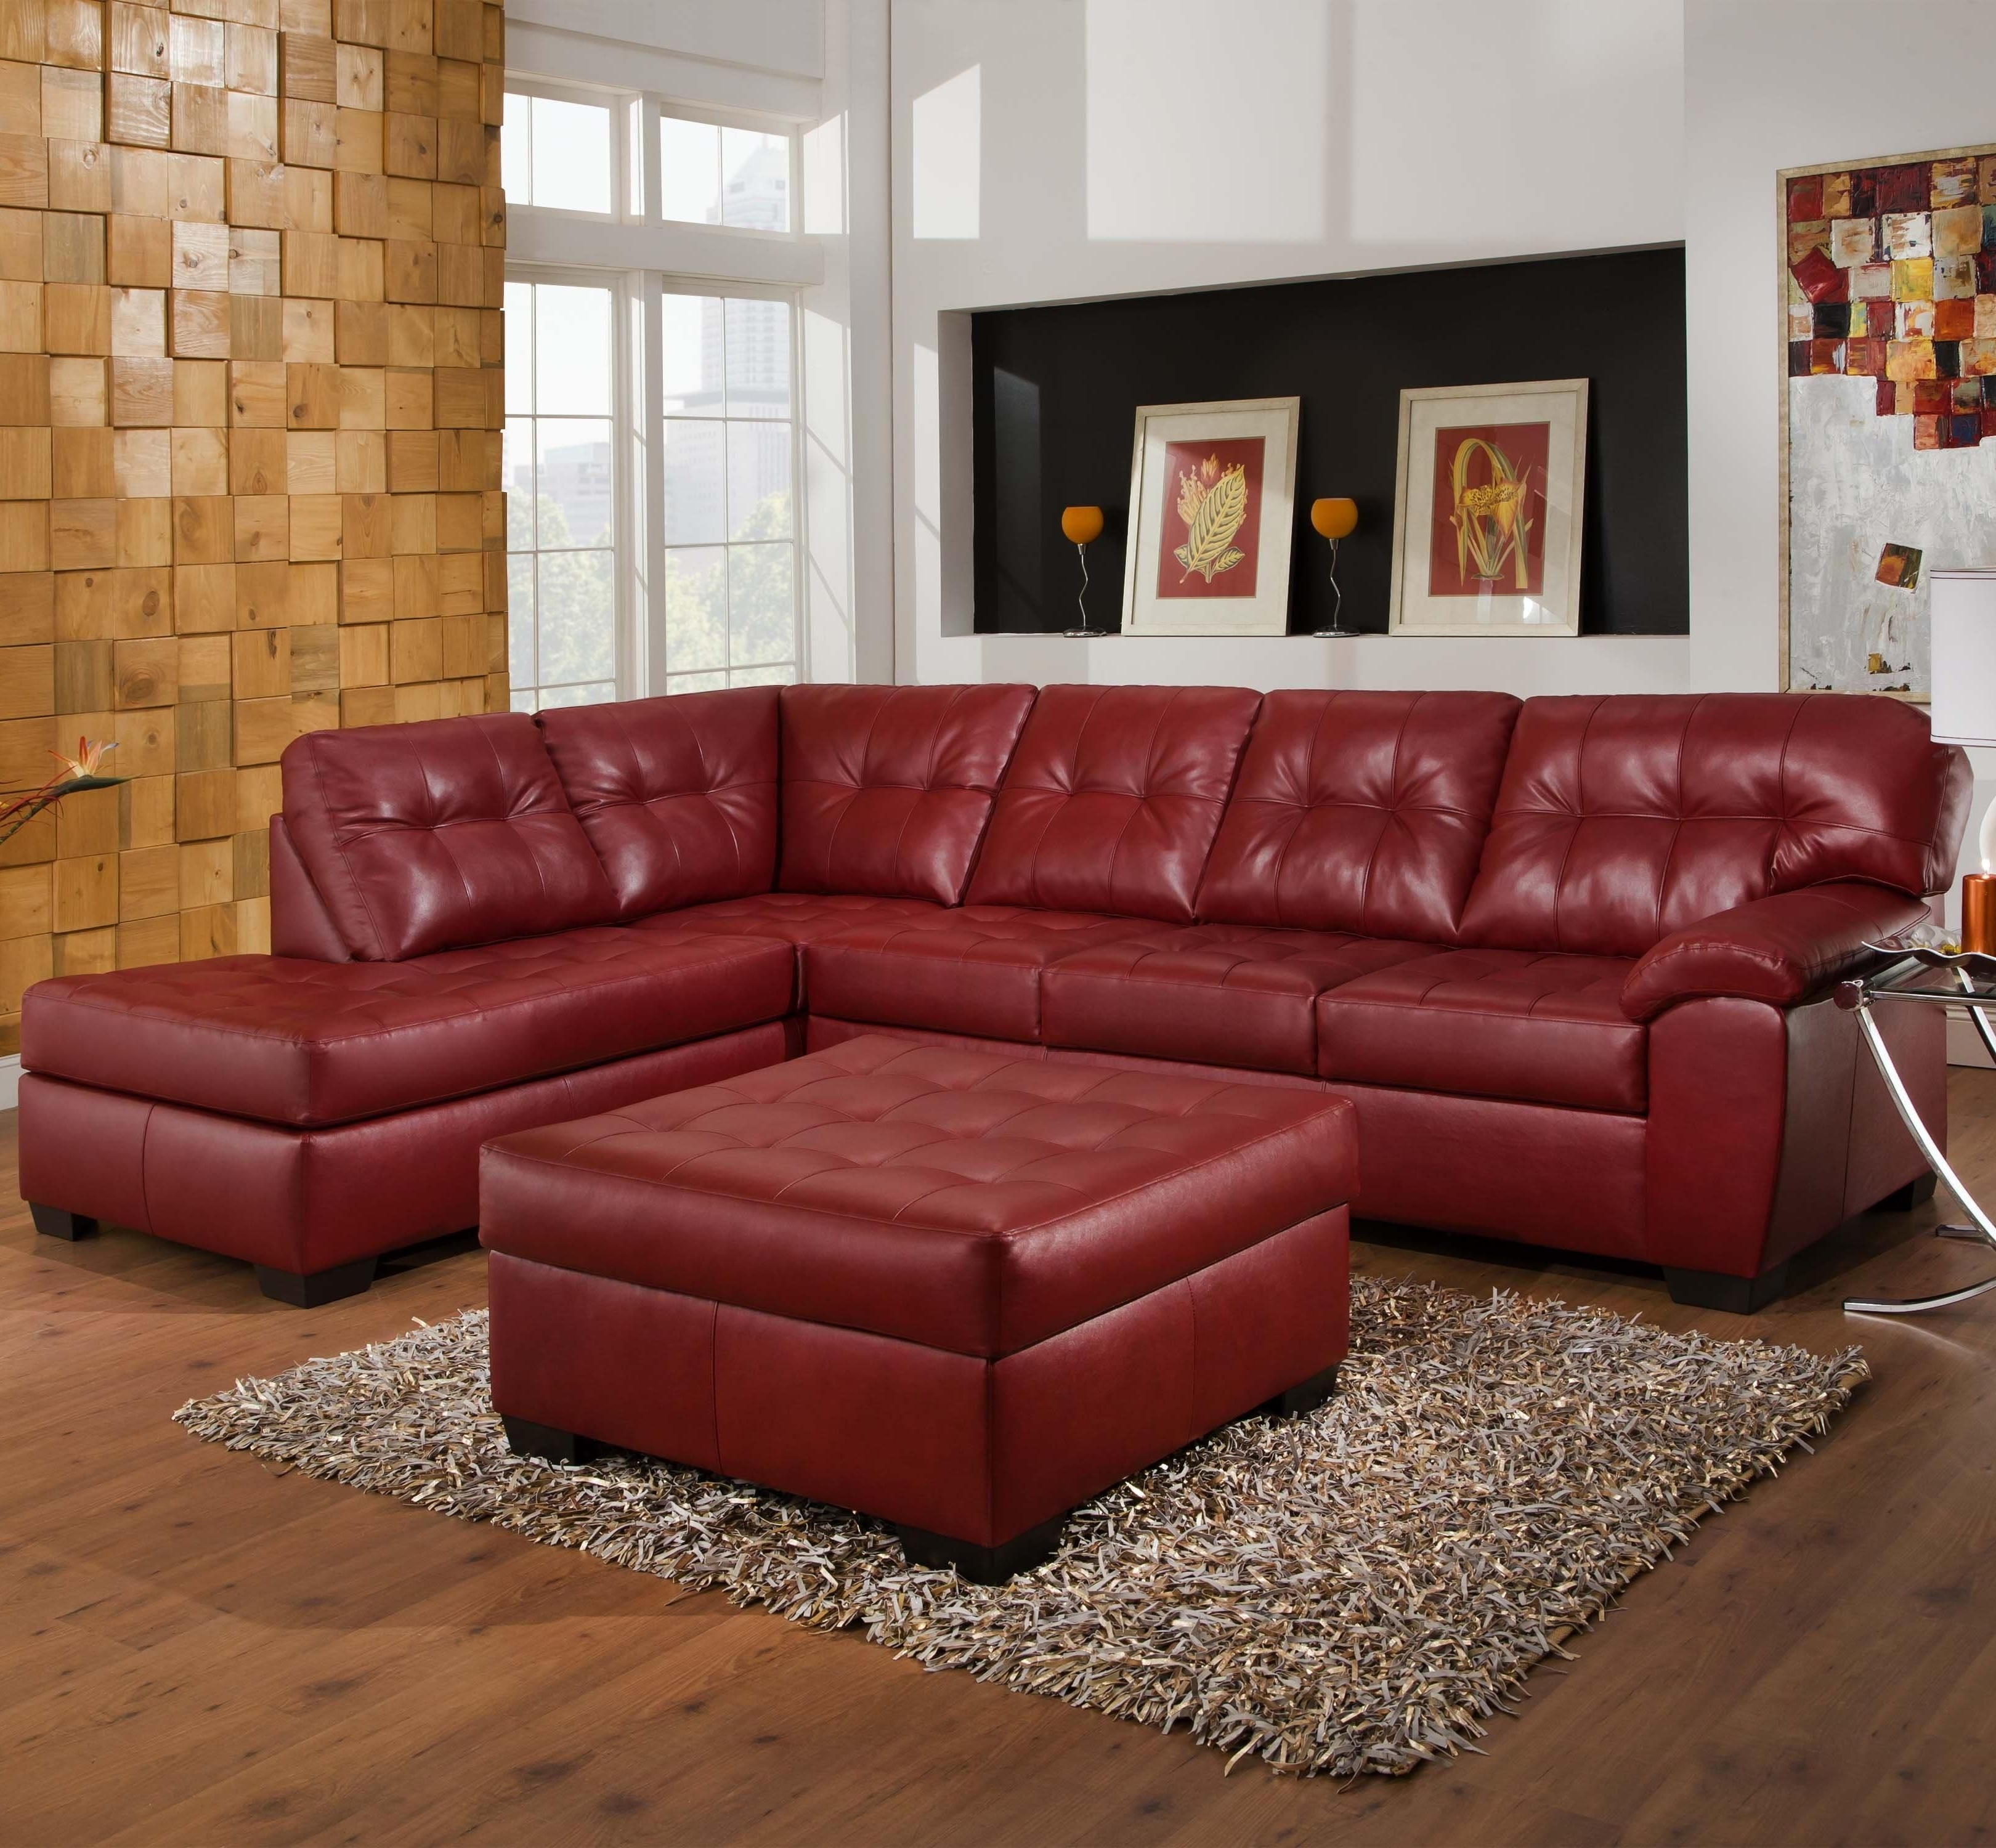 9569 2 Piece Sectional With Tufted Seats & Backsimmons Inside Most Popular Rochester Ny Sectional Sofas (View 13 of 20)